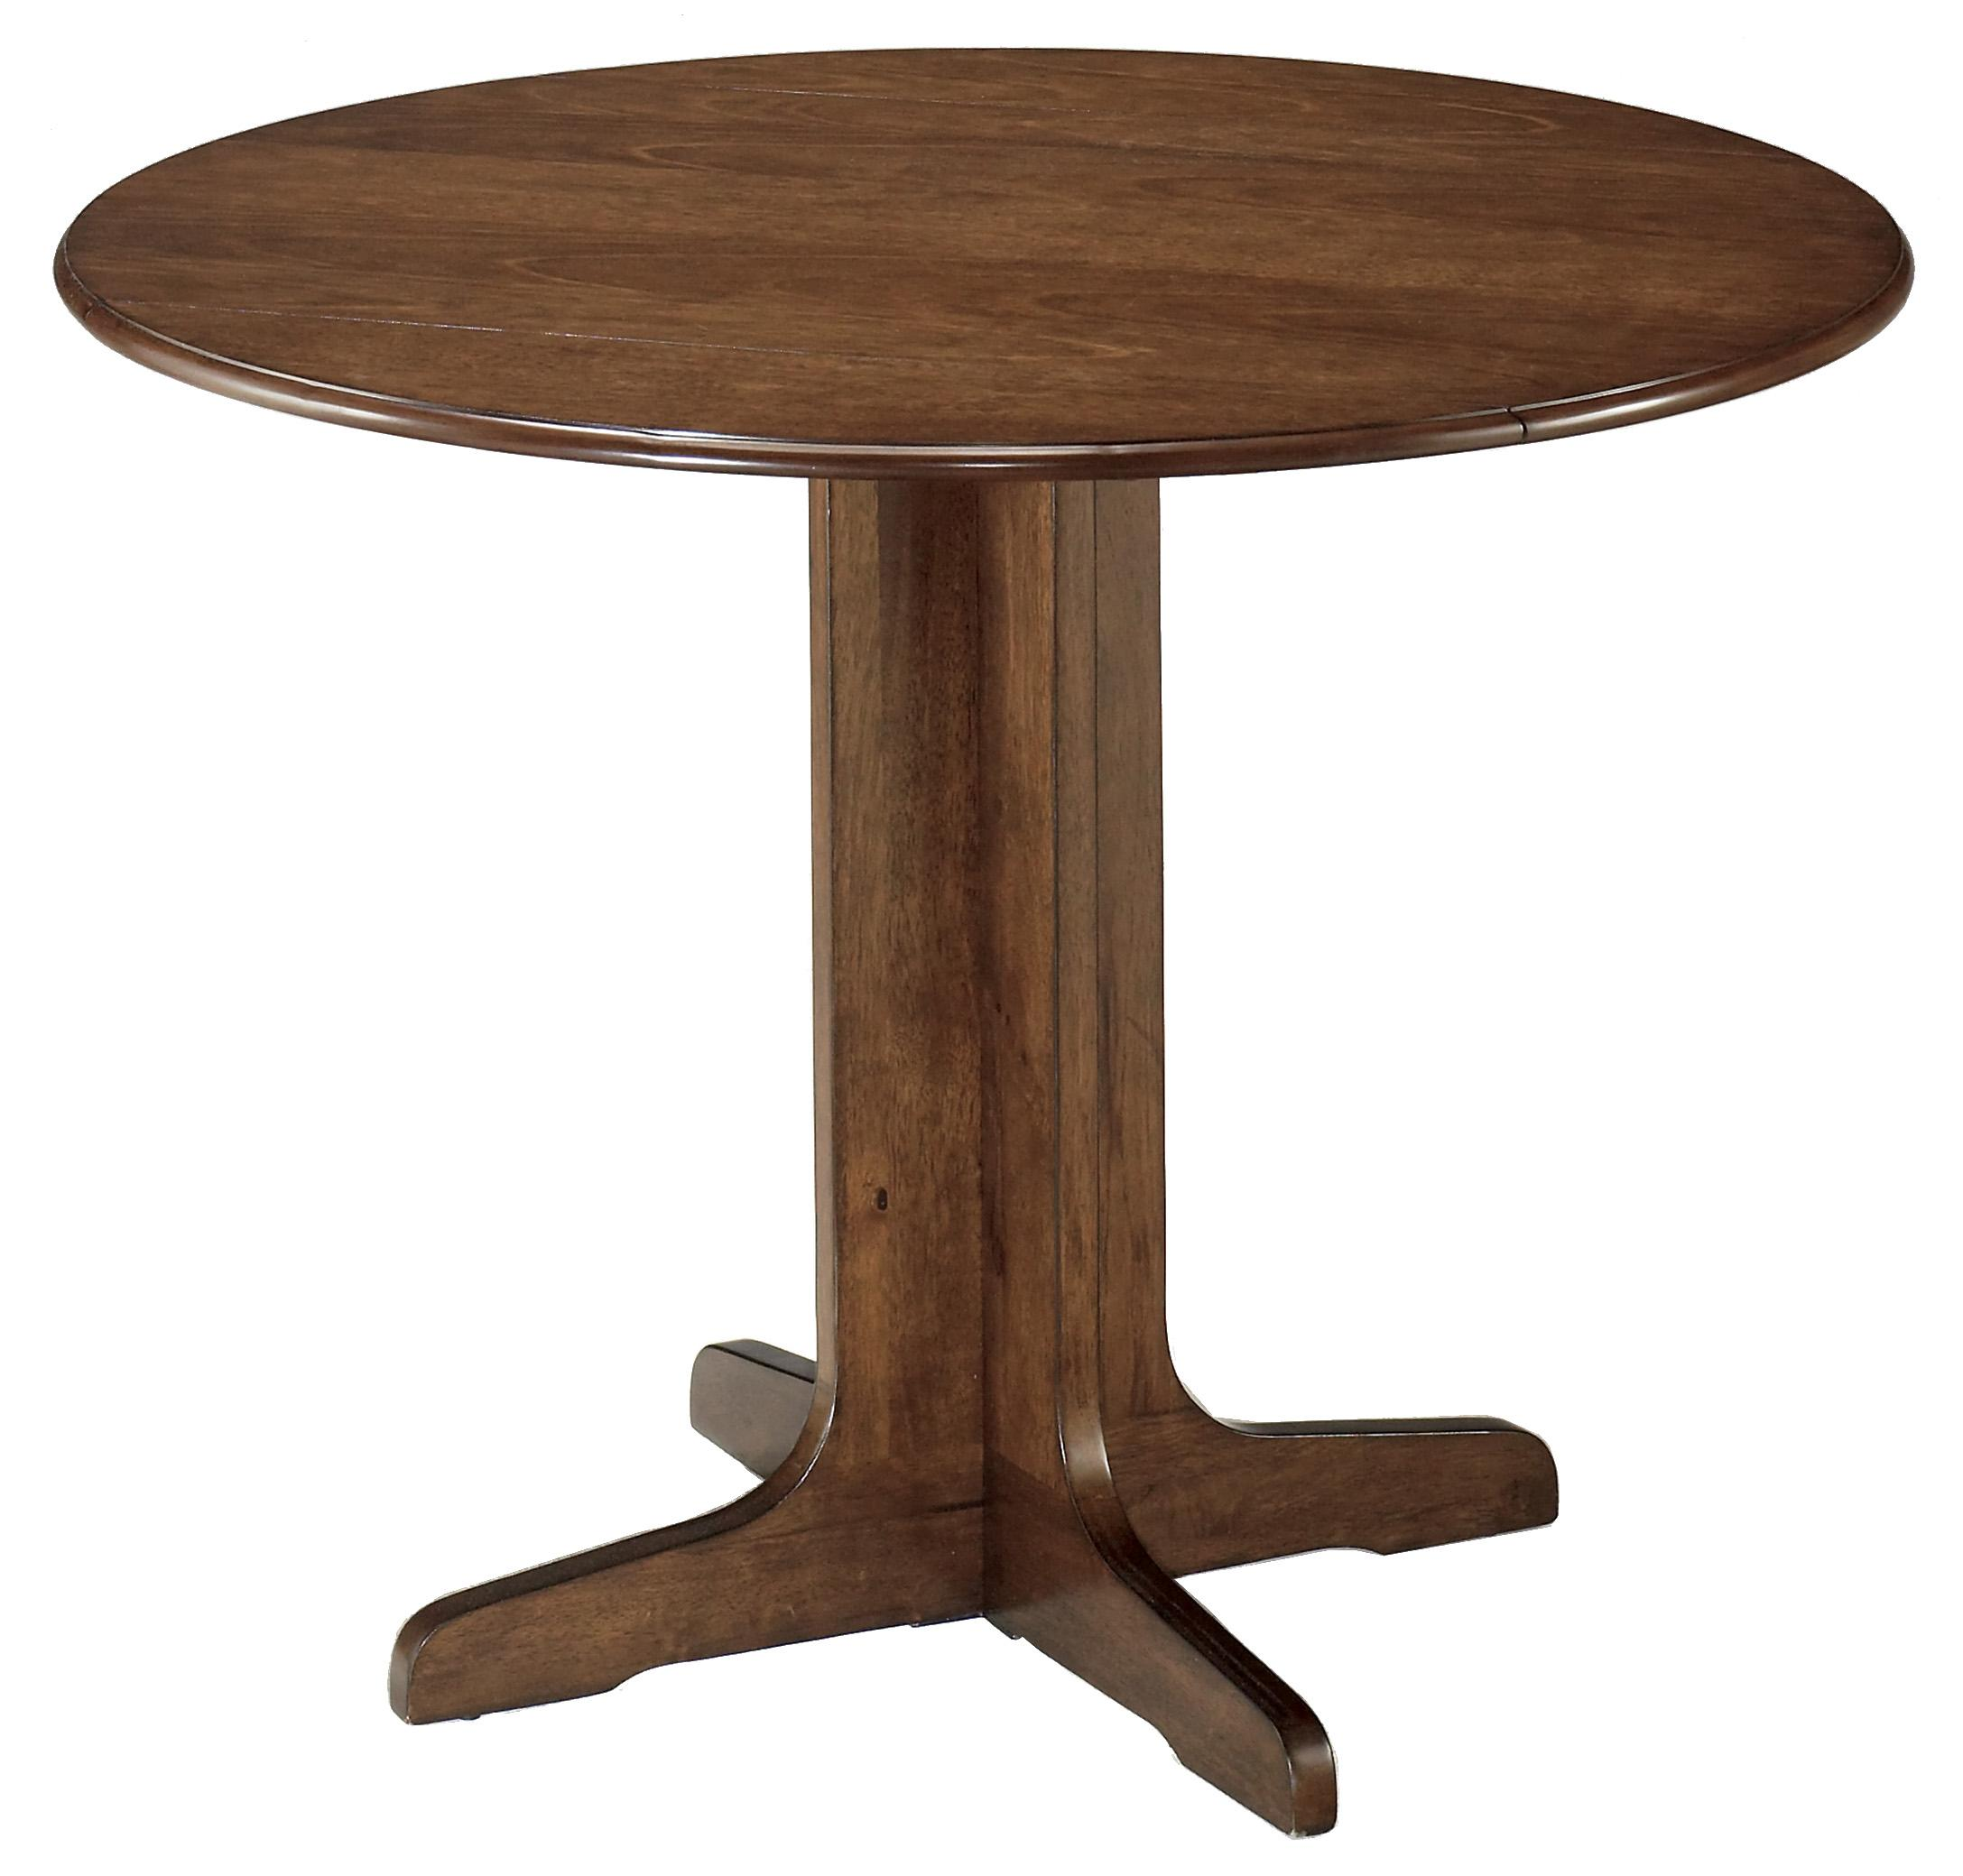 Drop Leaf Table With Chairs Ashley Signature Design Stuman D293 15 Round Drop Leaf